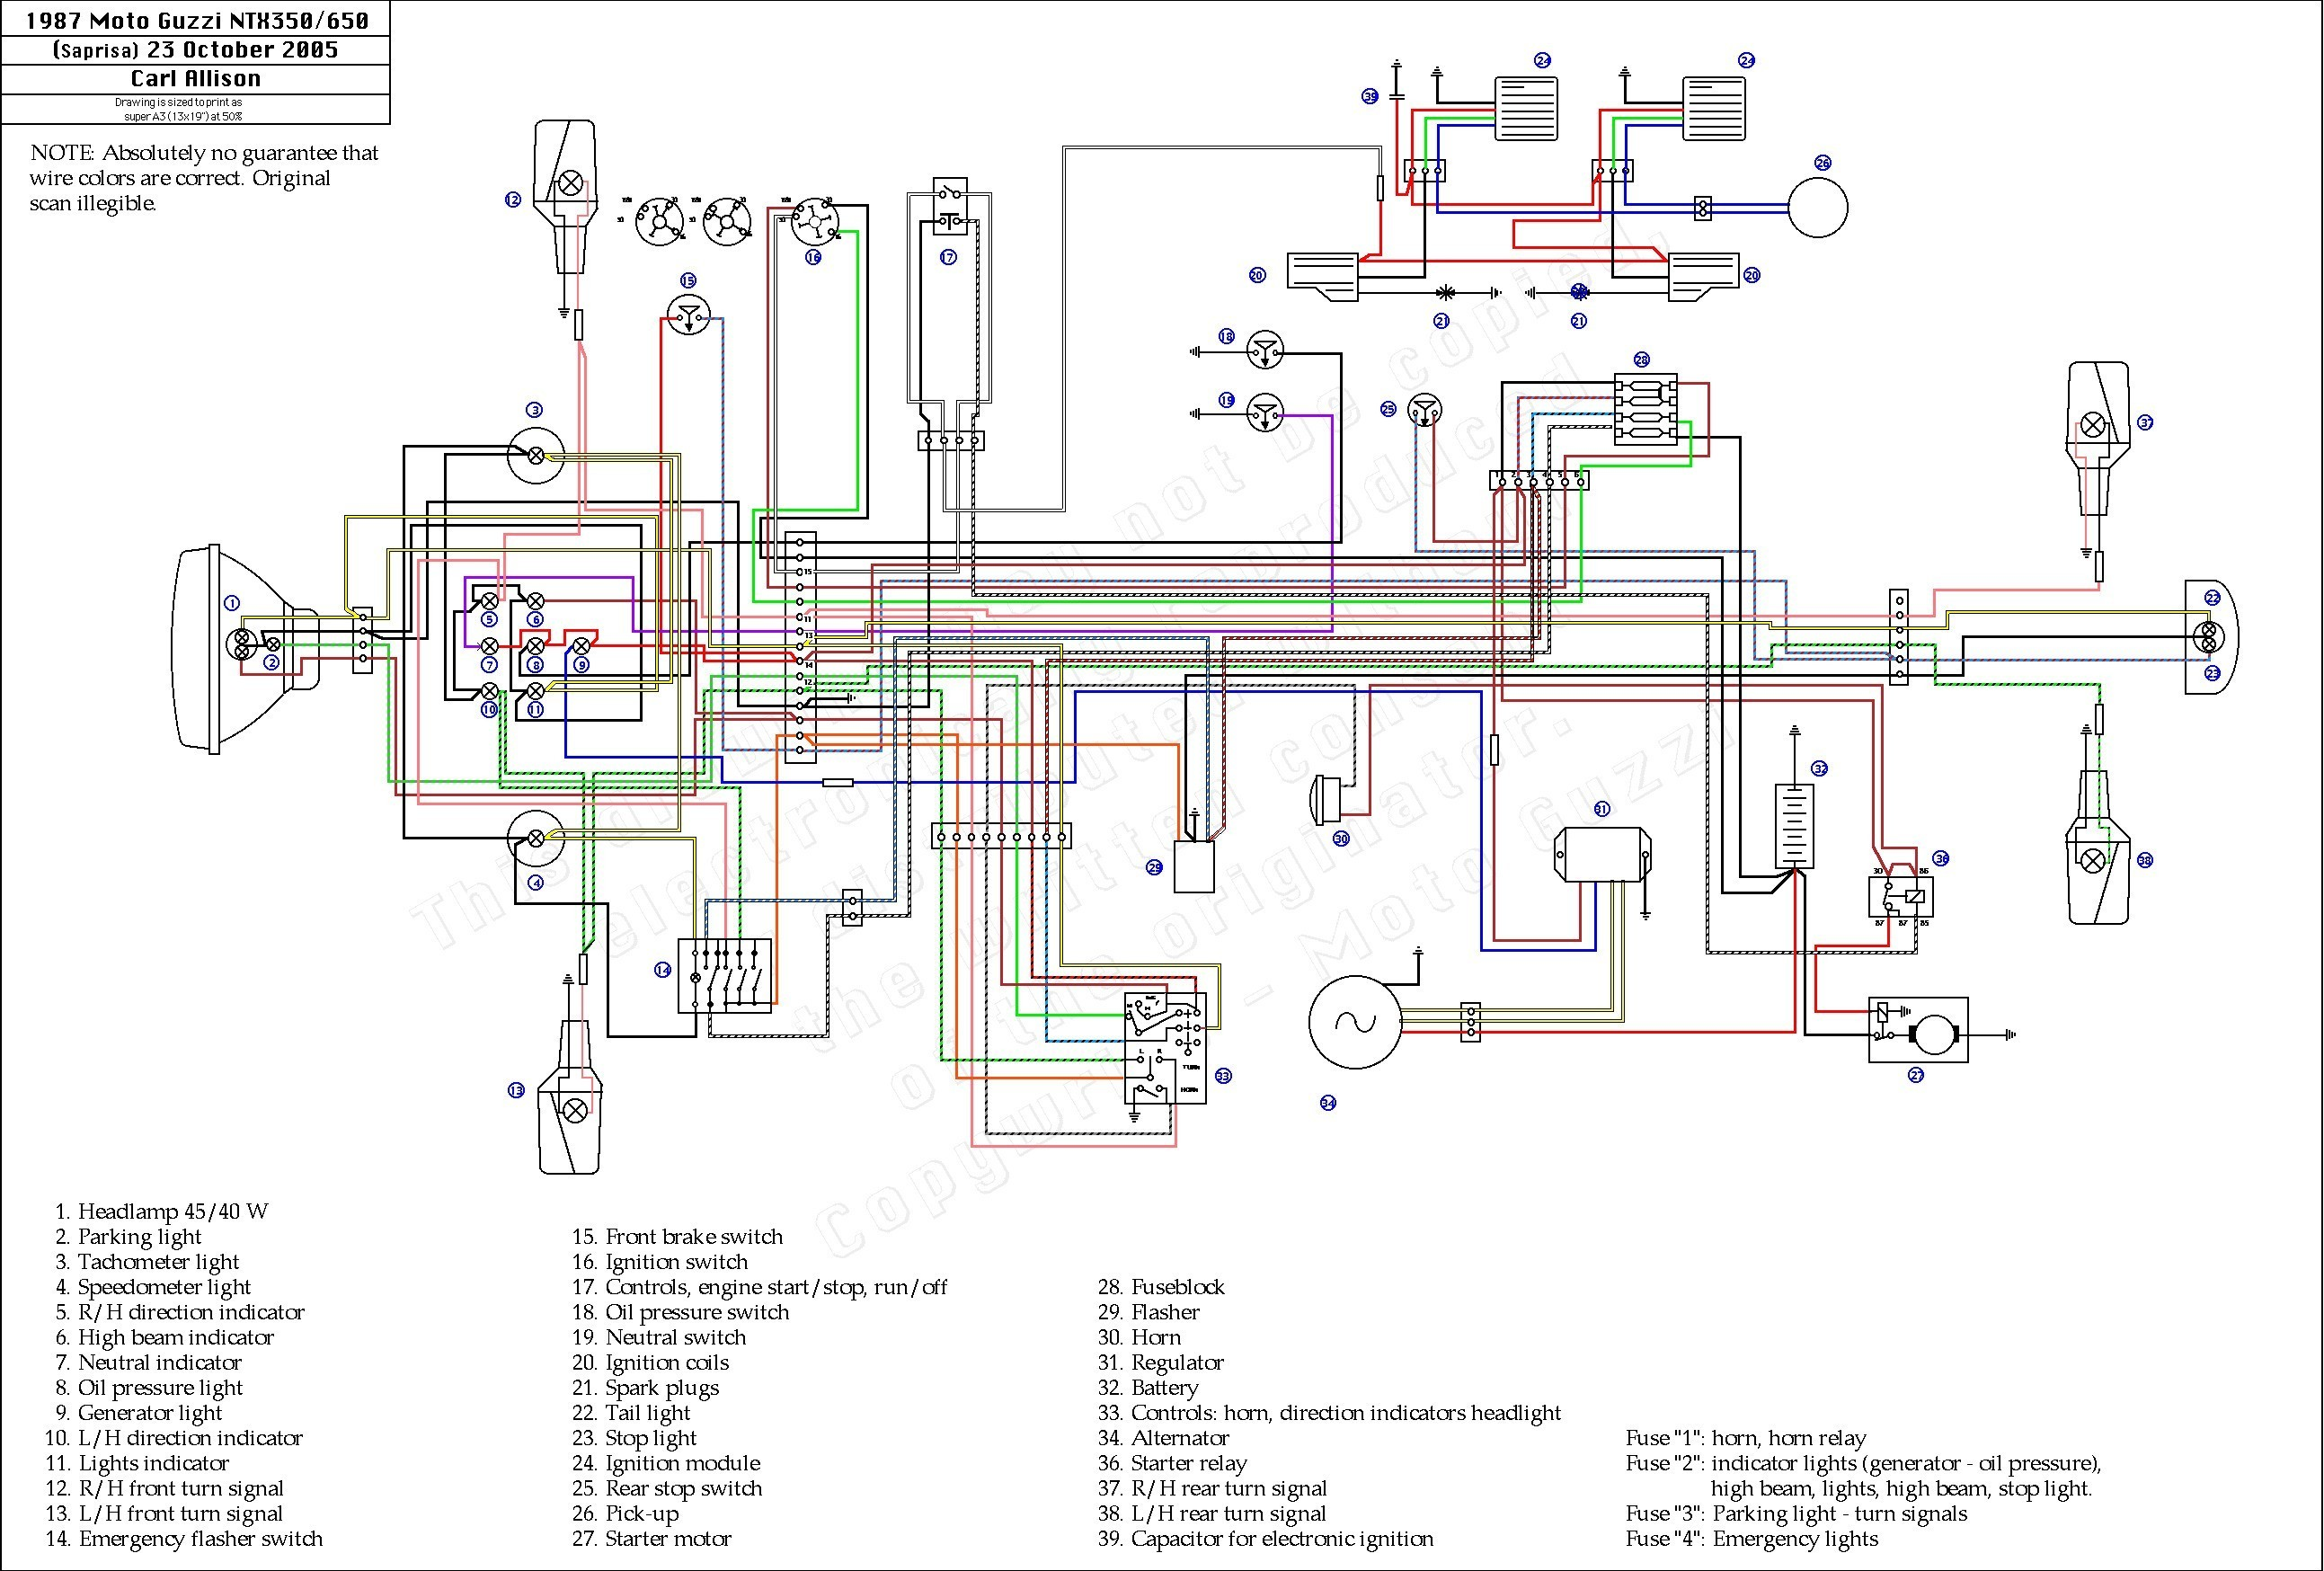 3 Wire Oil Pressure Switch Wiring Diagram